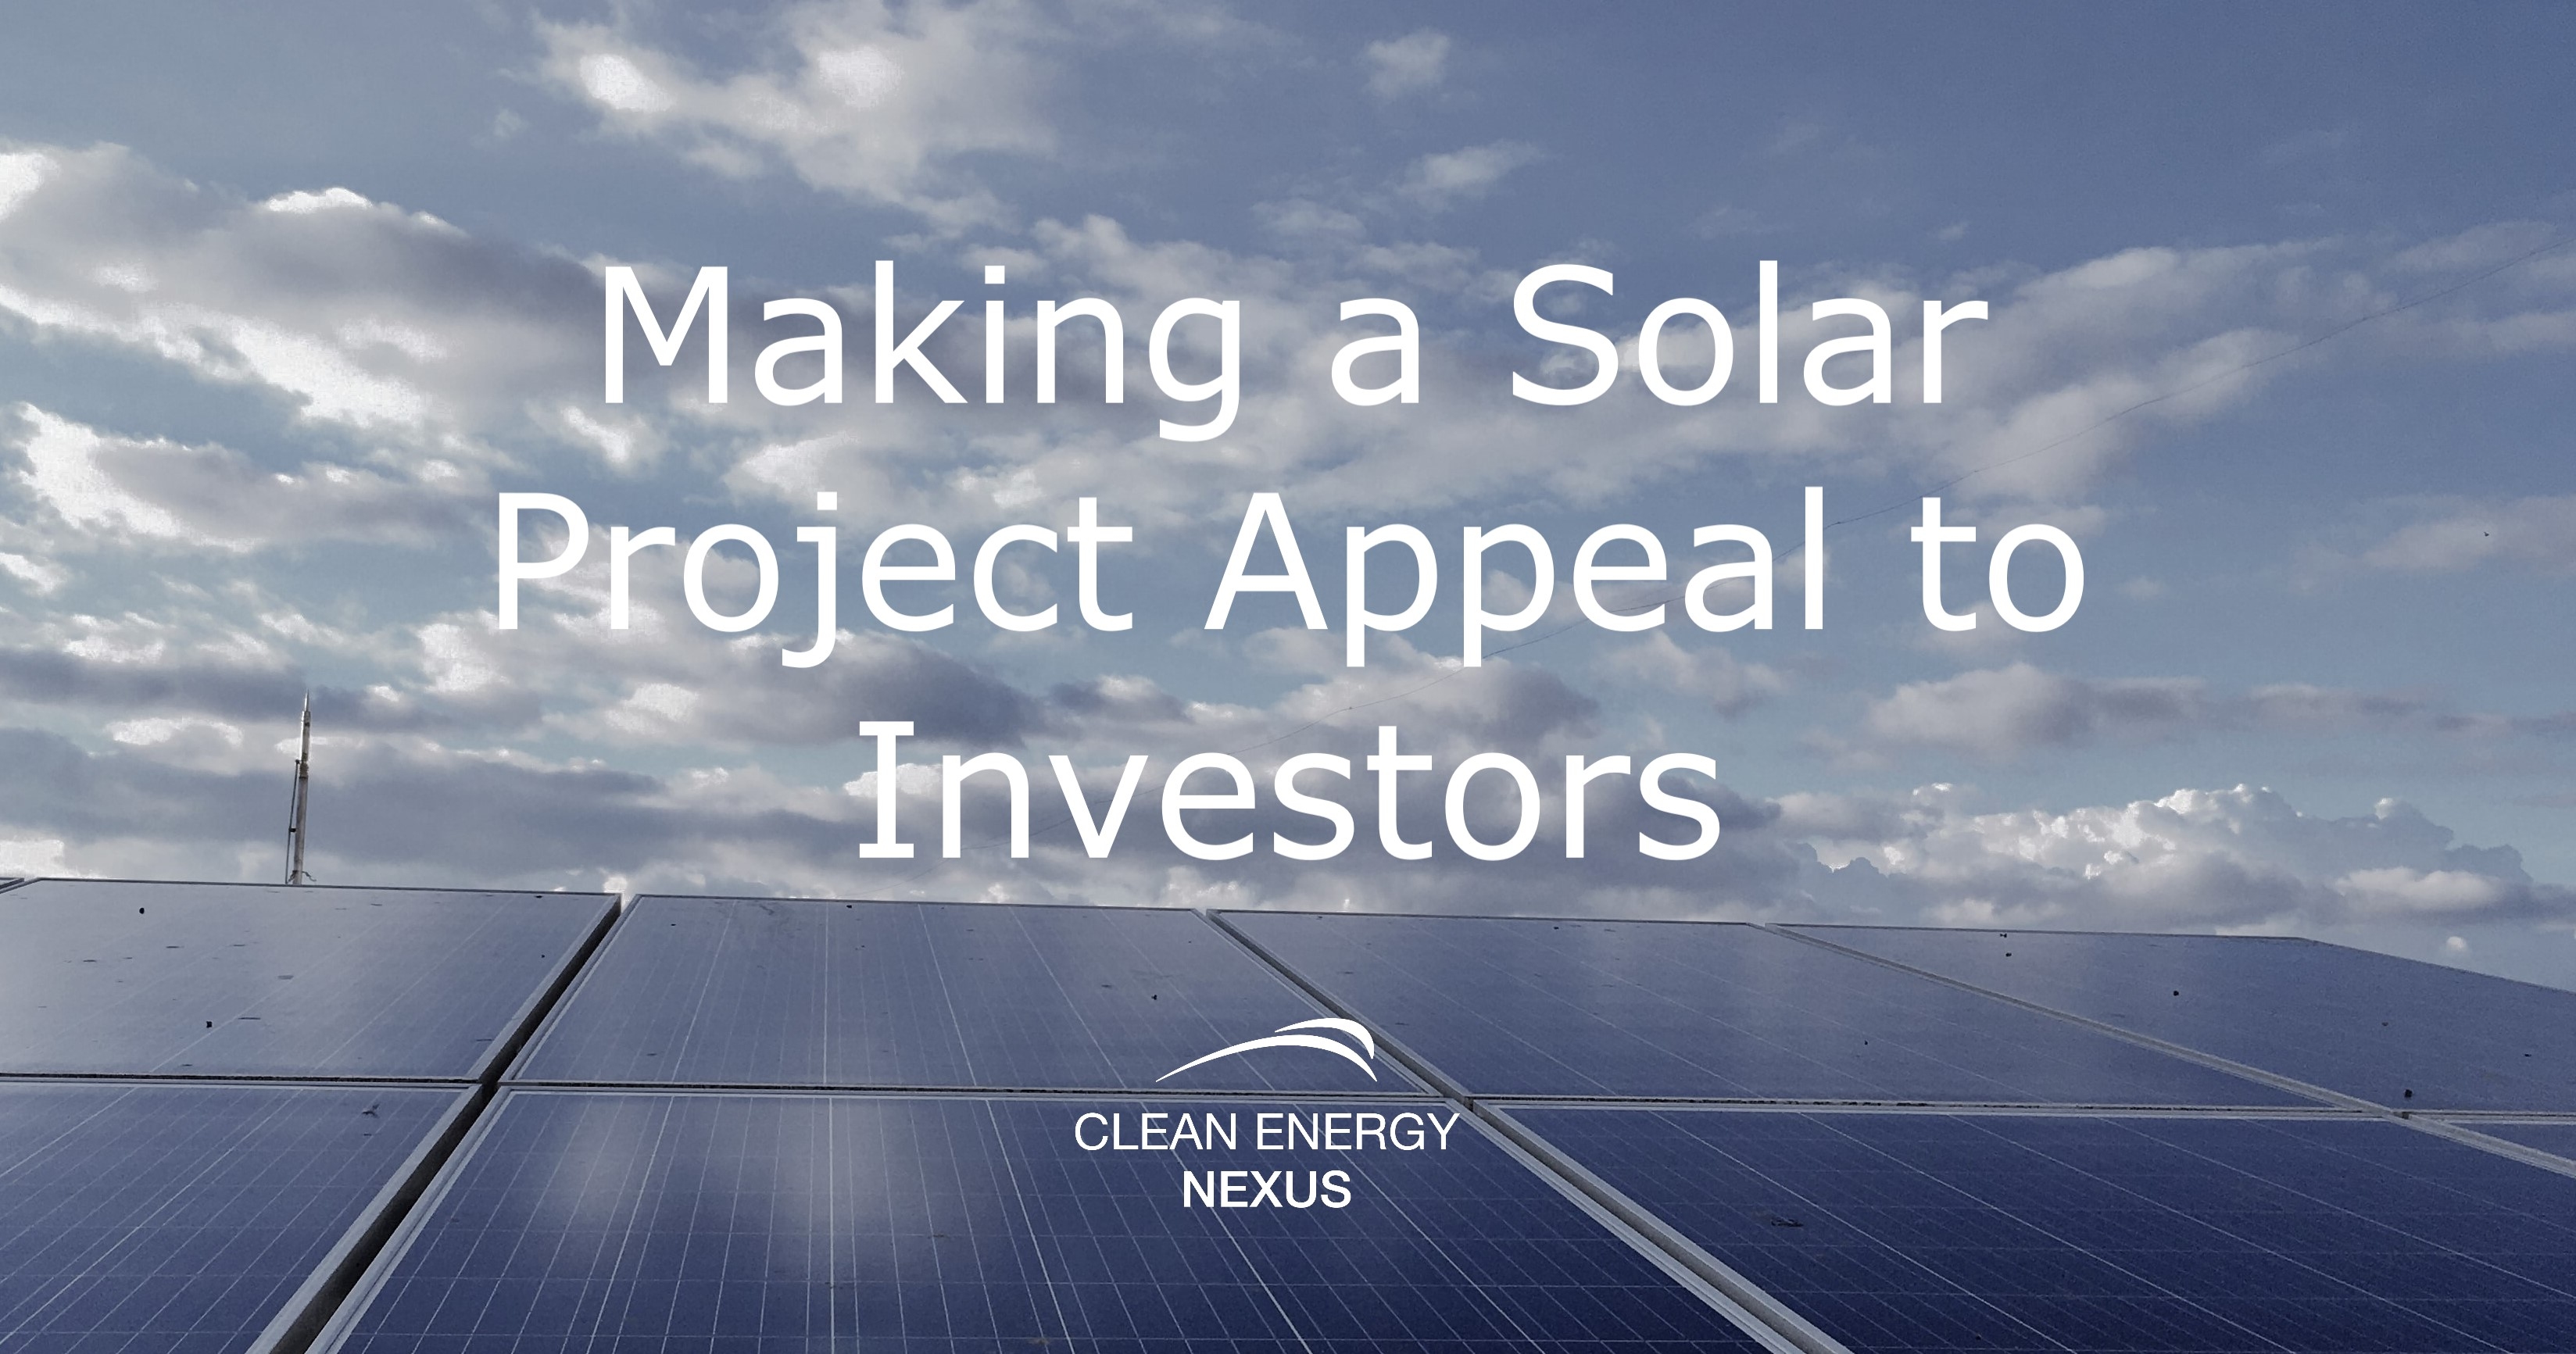 Making a Solar Project Appeal to Investors V1